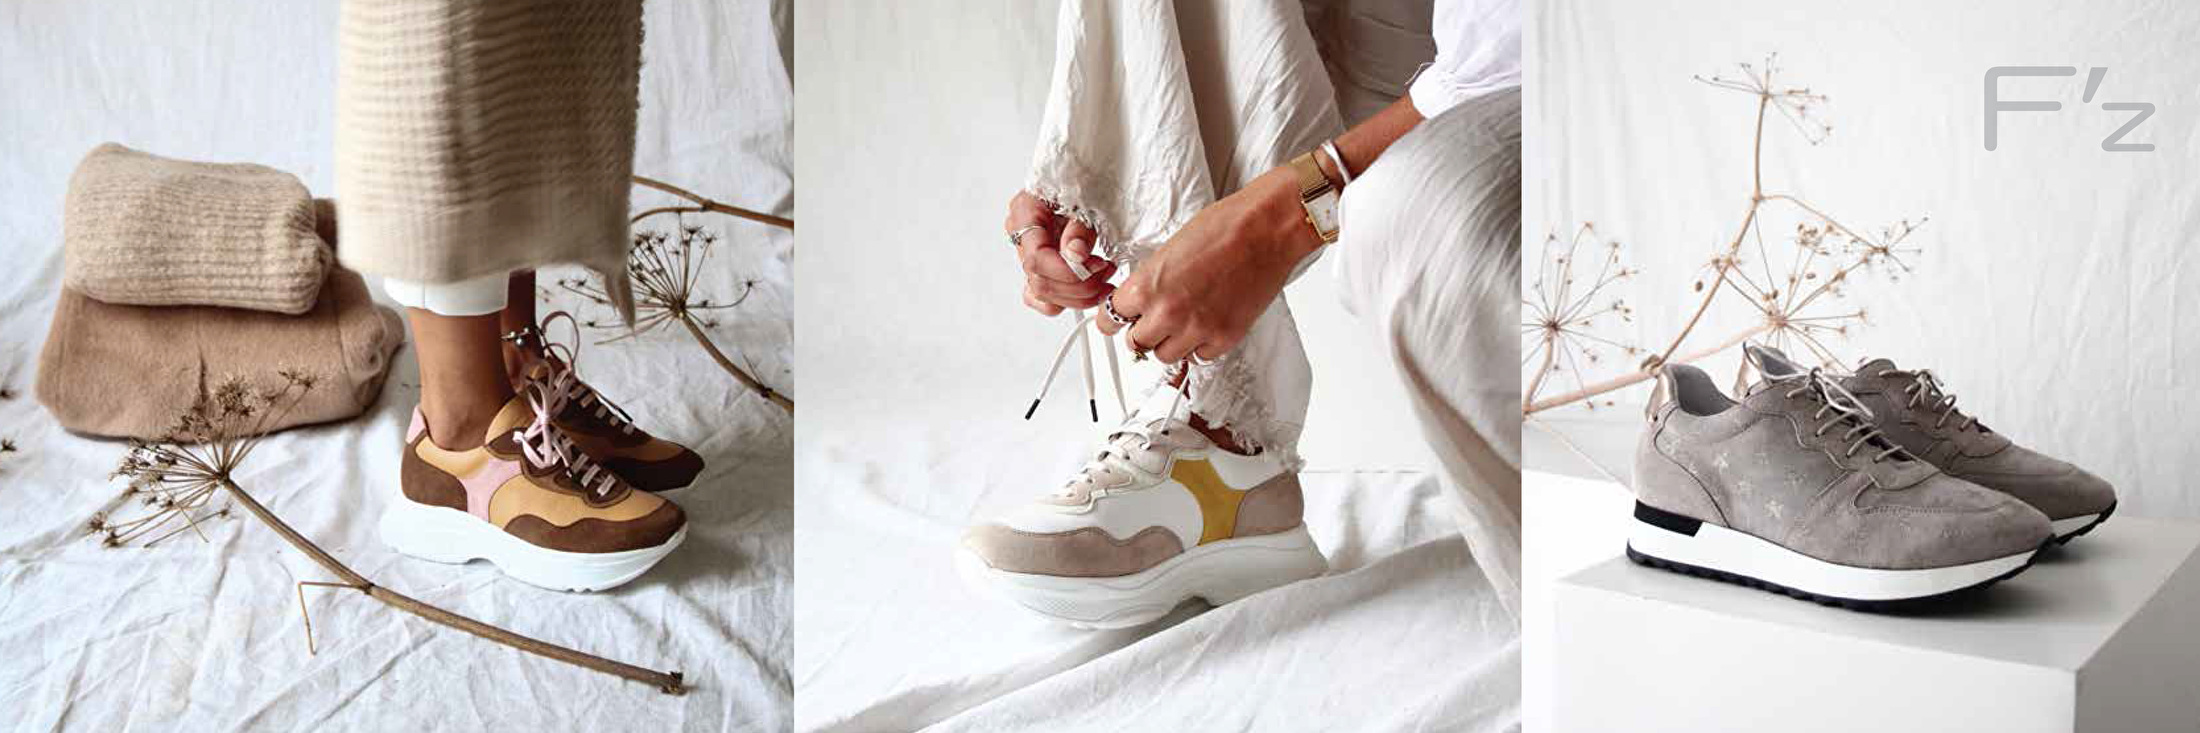 W20 sneakers product pagina